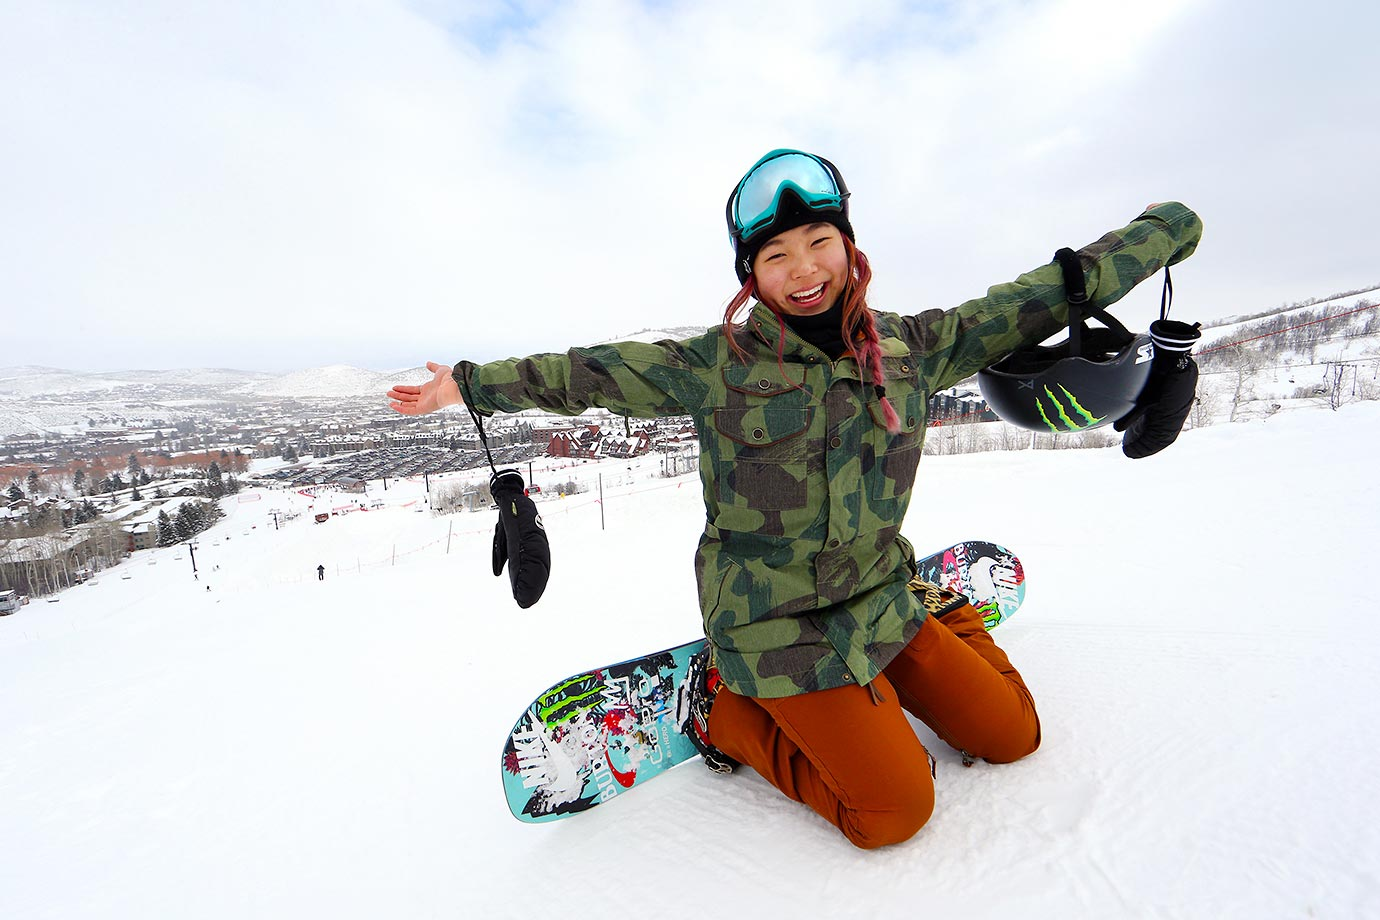 15-year-old snowboarding phenom Chloe Kim has a contagious smile and passion for her sport.